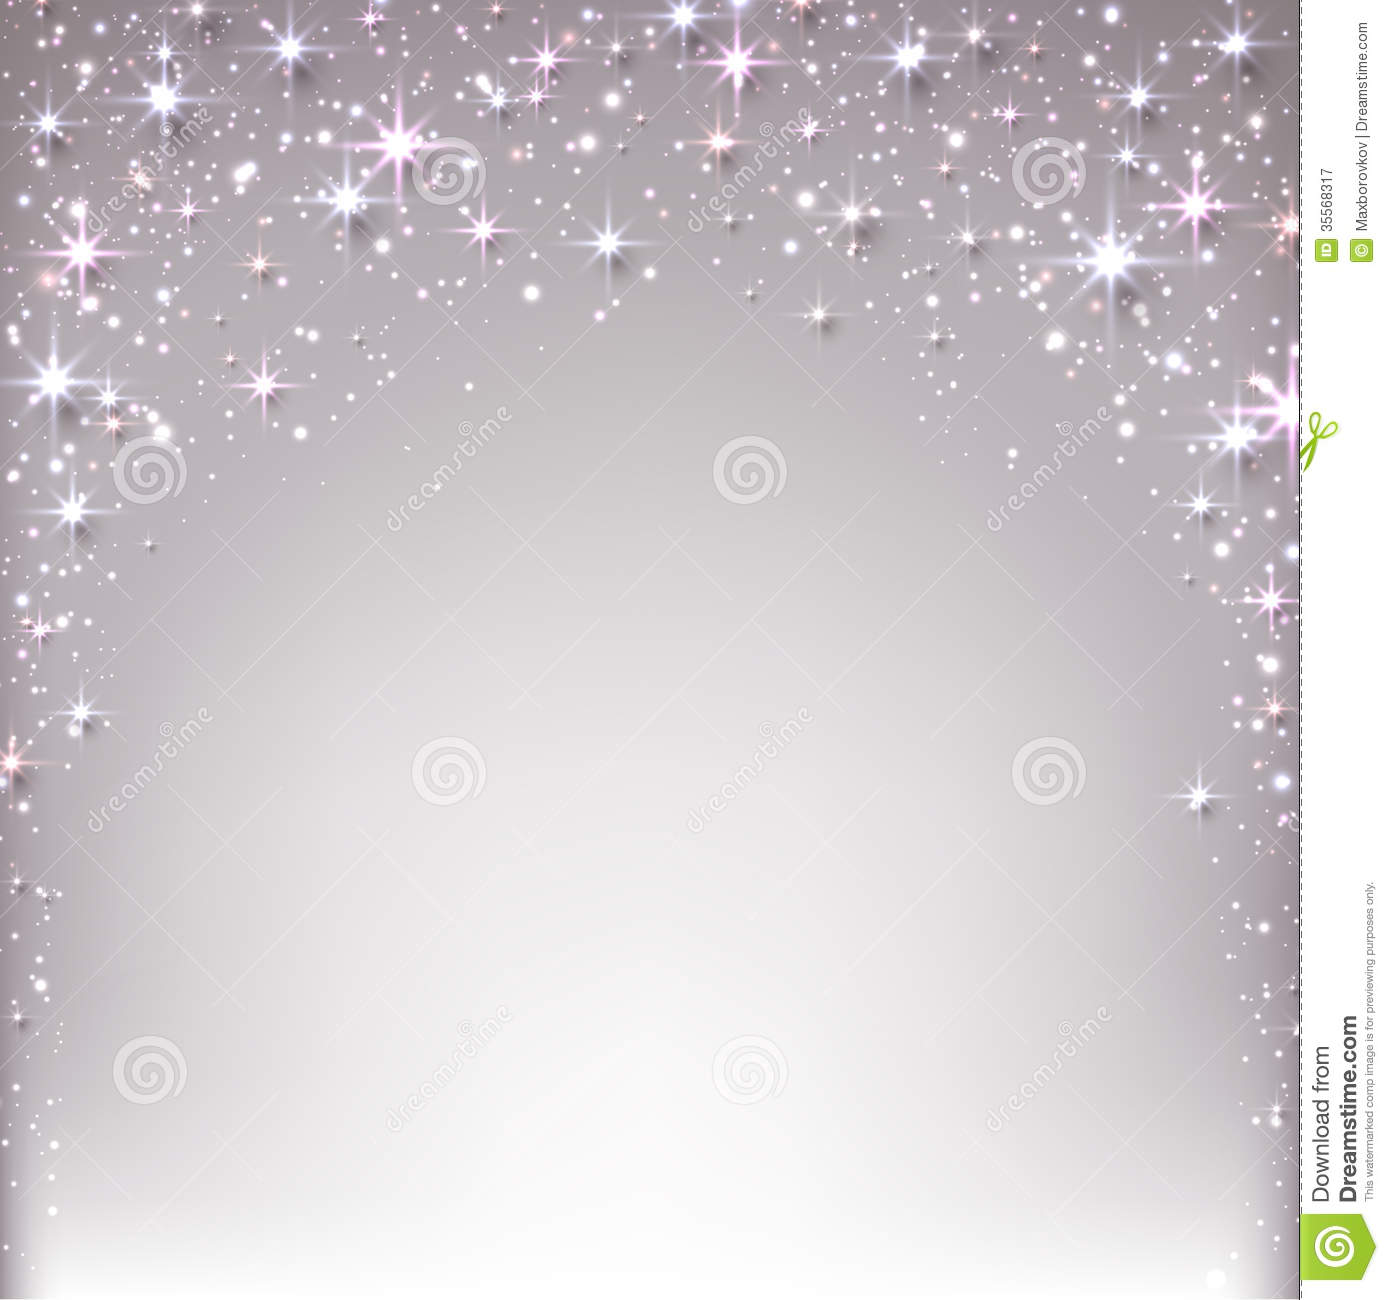 ... texture background. Holiday illustration with stars and sparkles